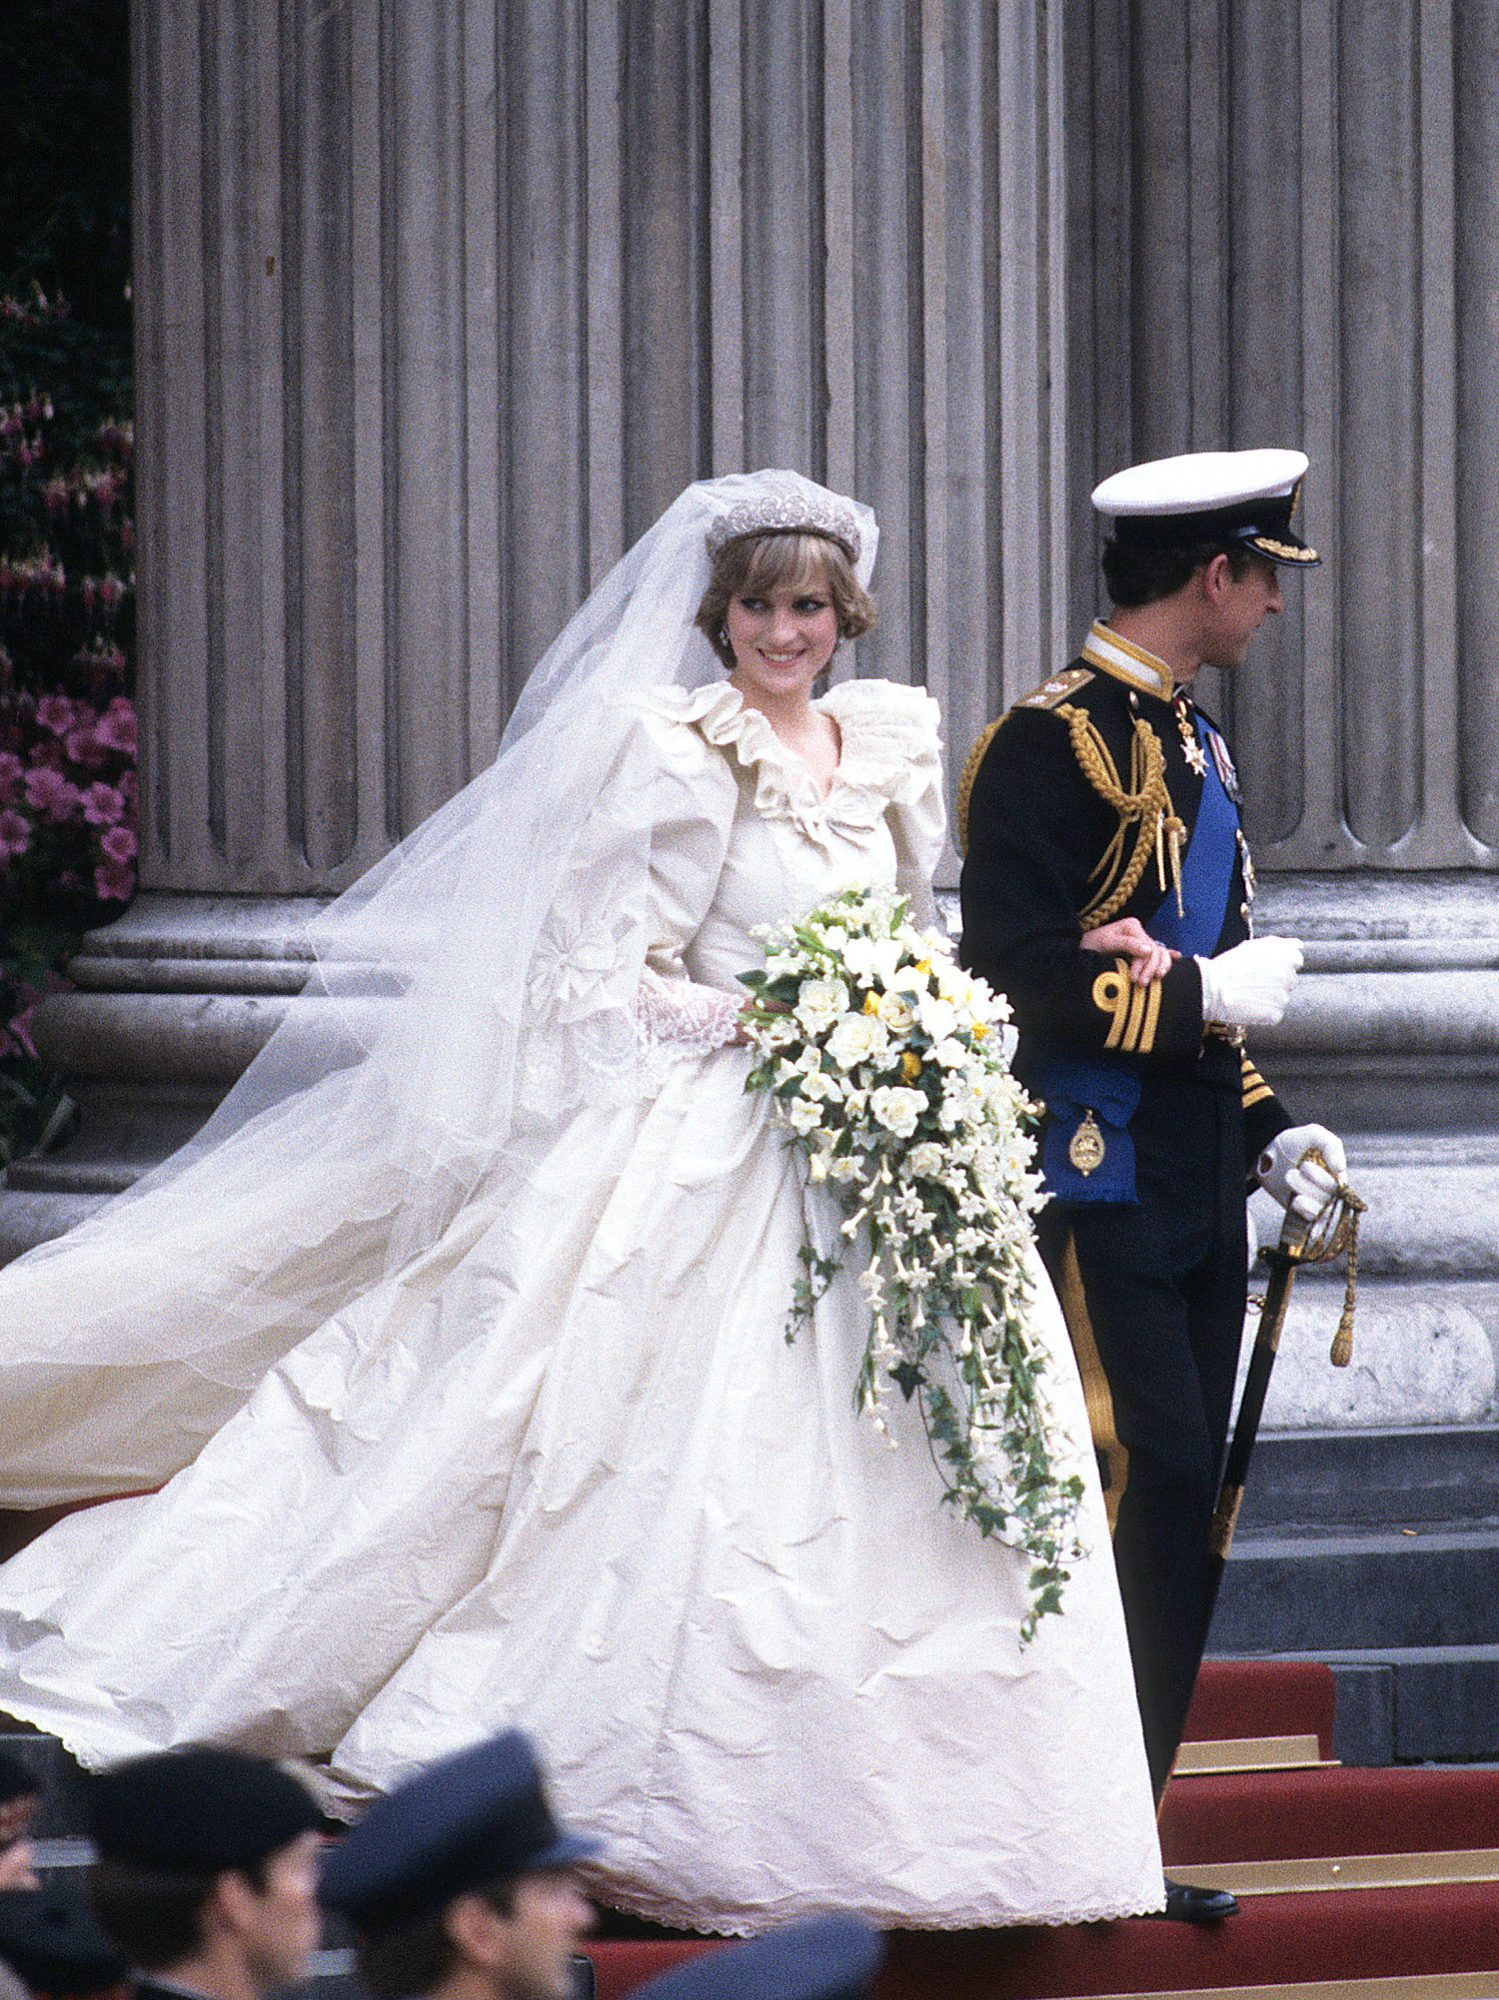 Prince Charles, Prince of Wales and Diana, Princess of Wales, wearing a wedding dress designed by David and Elizabeth Emanuel and the Spencer family Tiara, leave St. Paul's Cathedral